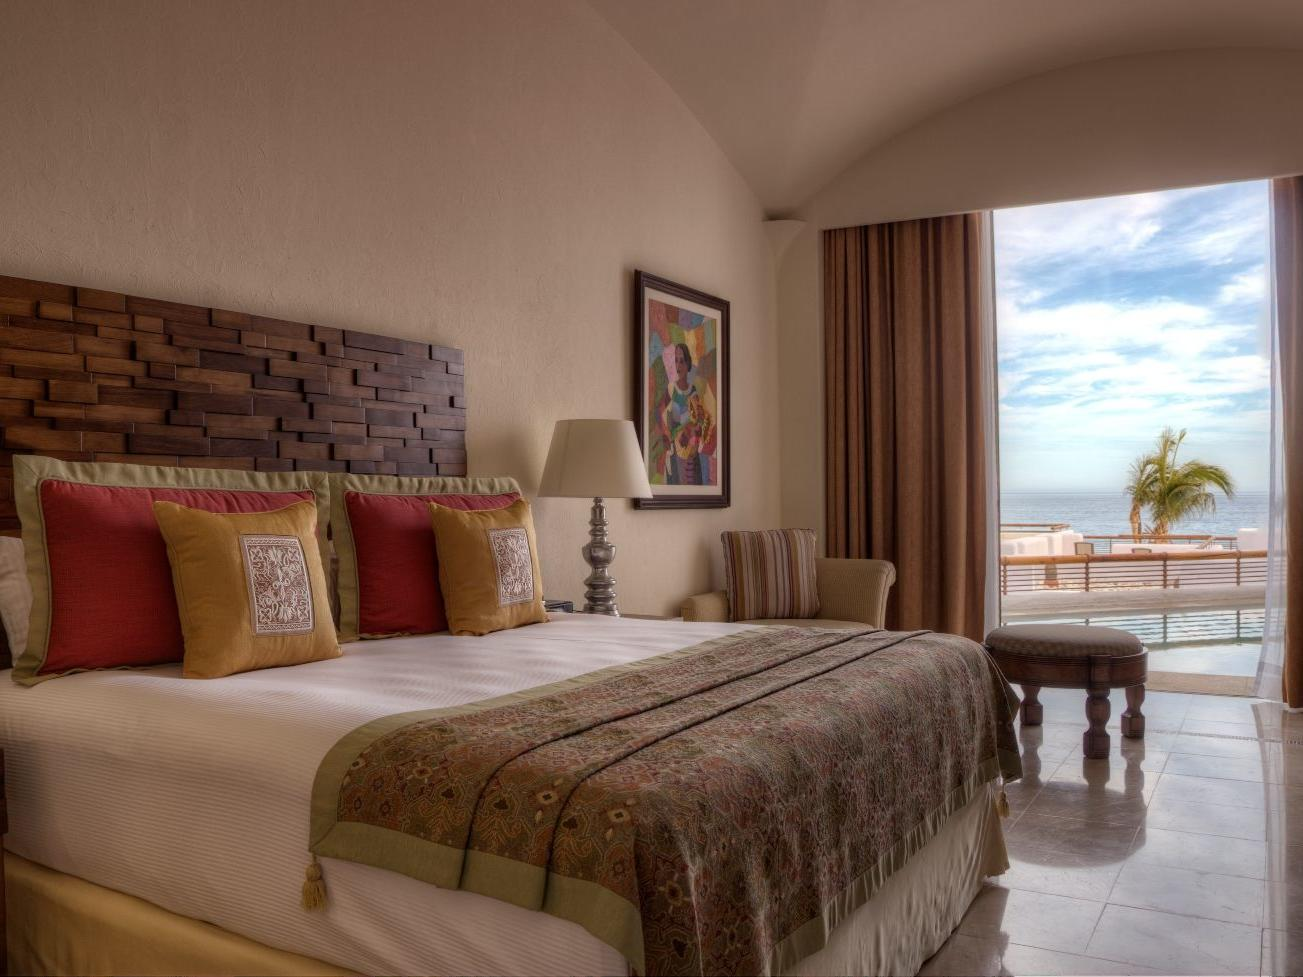 A large bed in a hotel room - Marquis Los Cabos